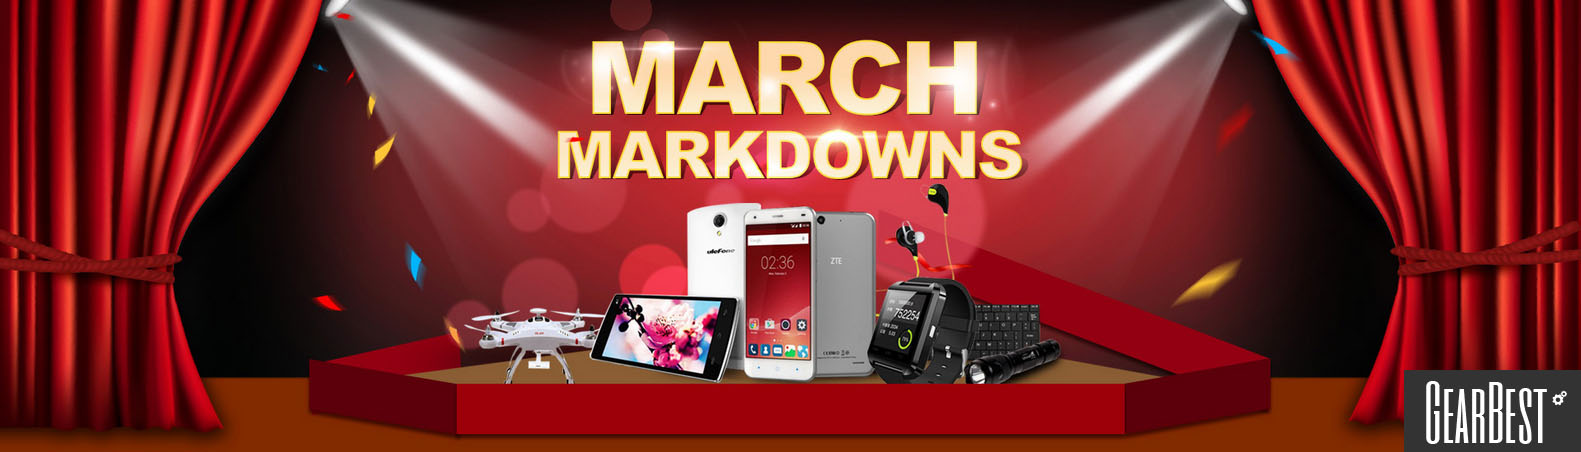 March Markdowns on GearBest 1